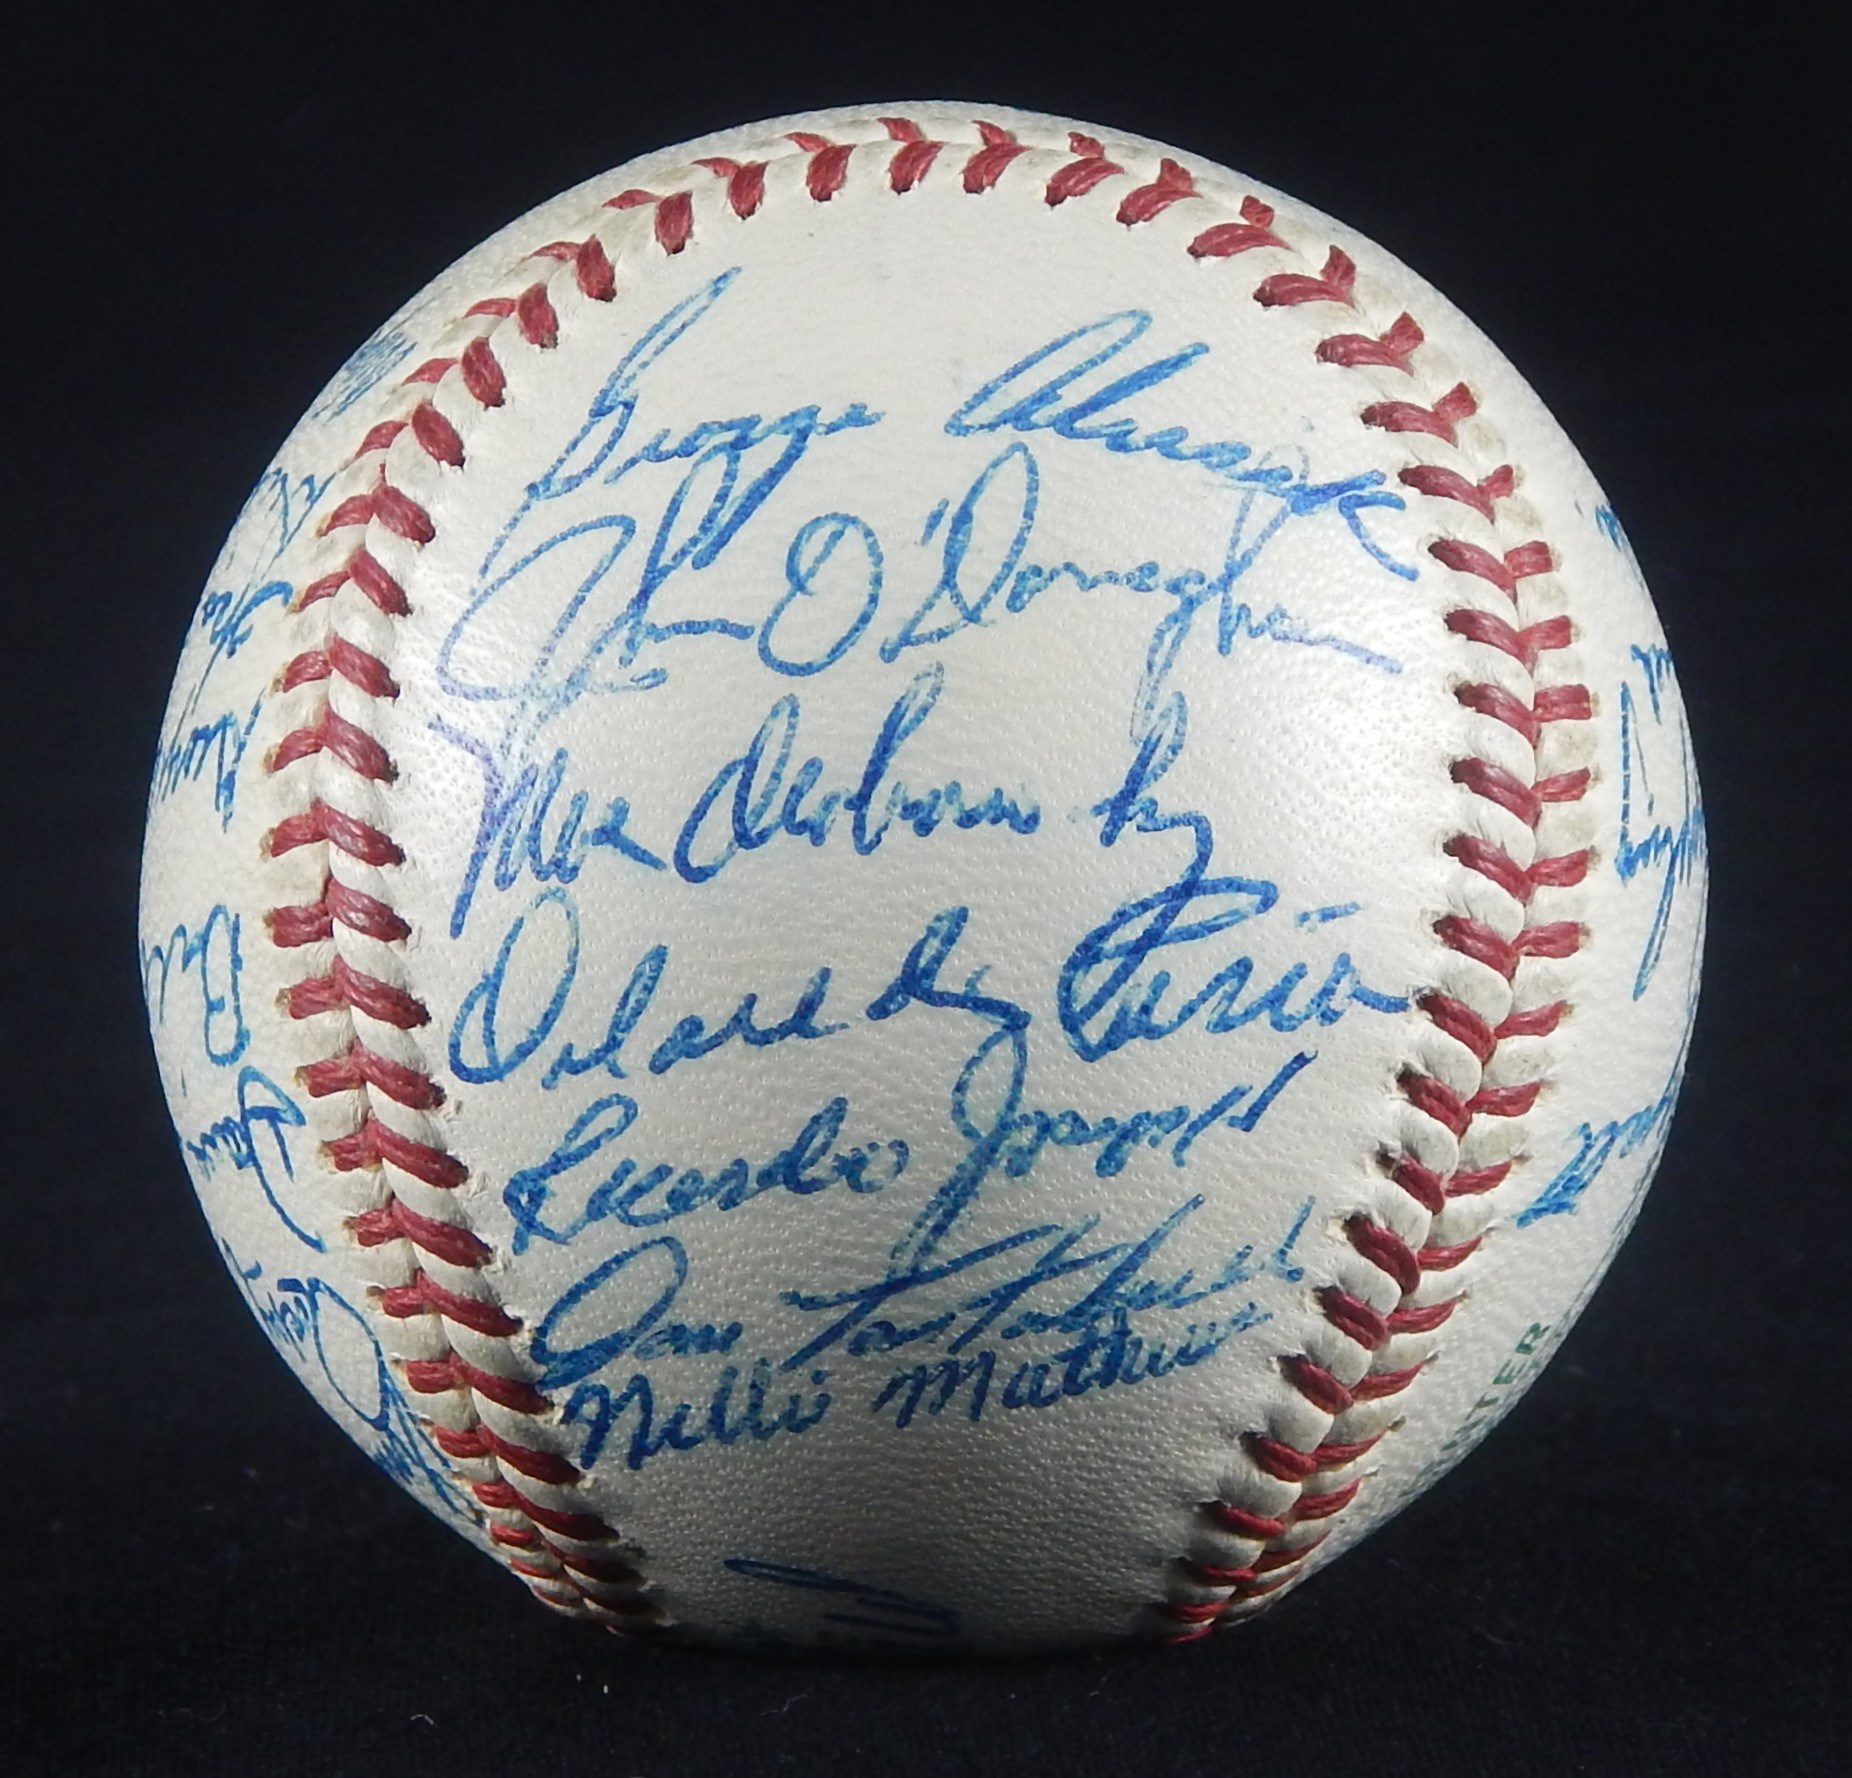 Autographs Baseball - Monthly 02-18